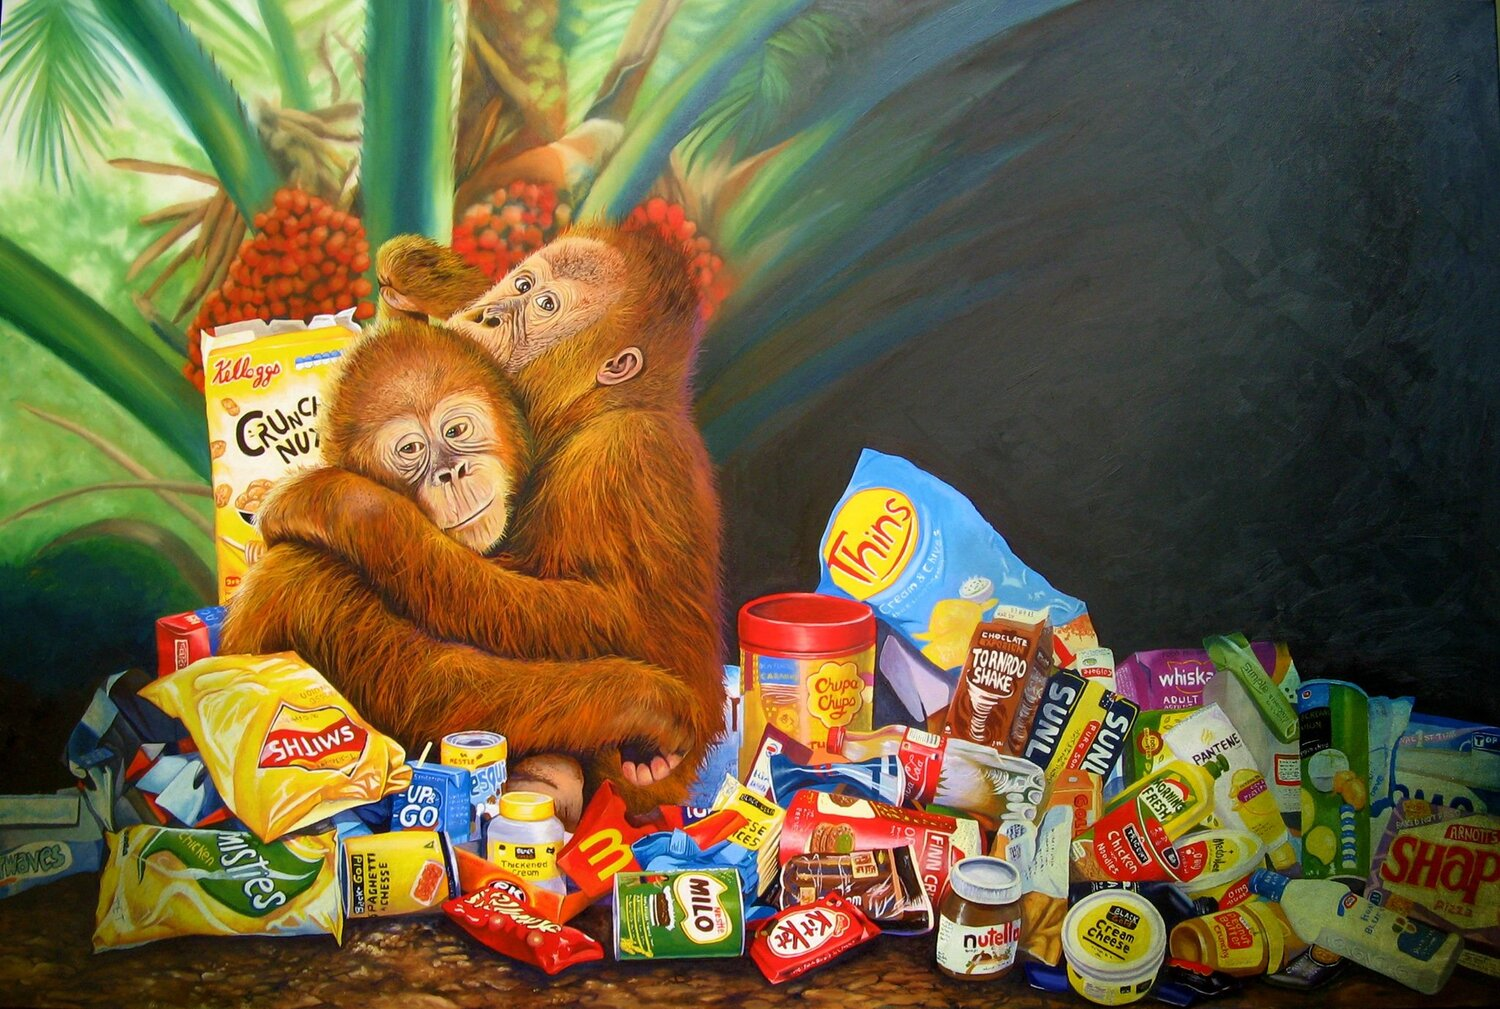 Palm Oil and Pollution by Jo Frederiks